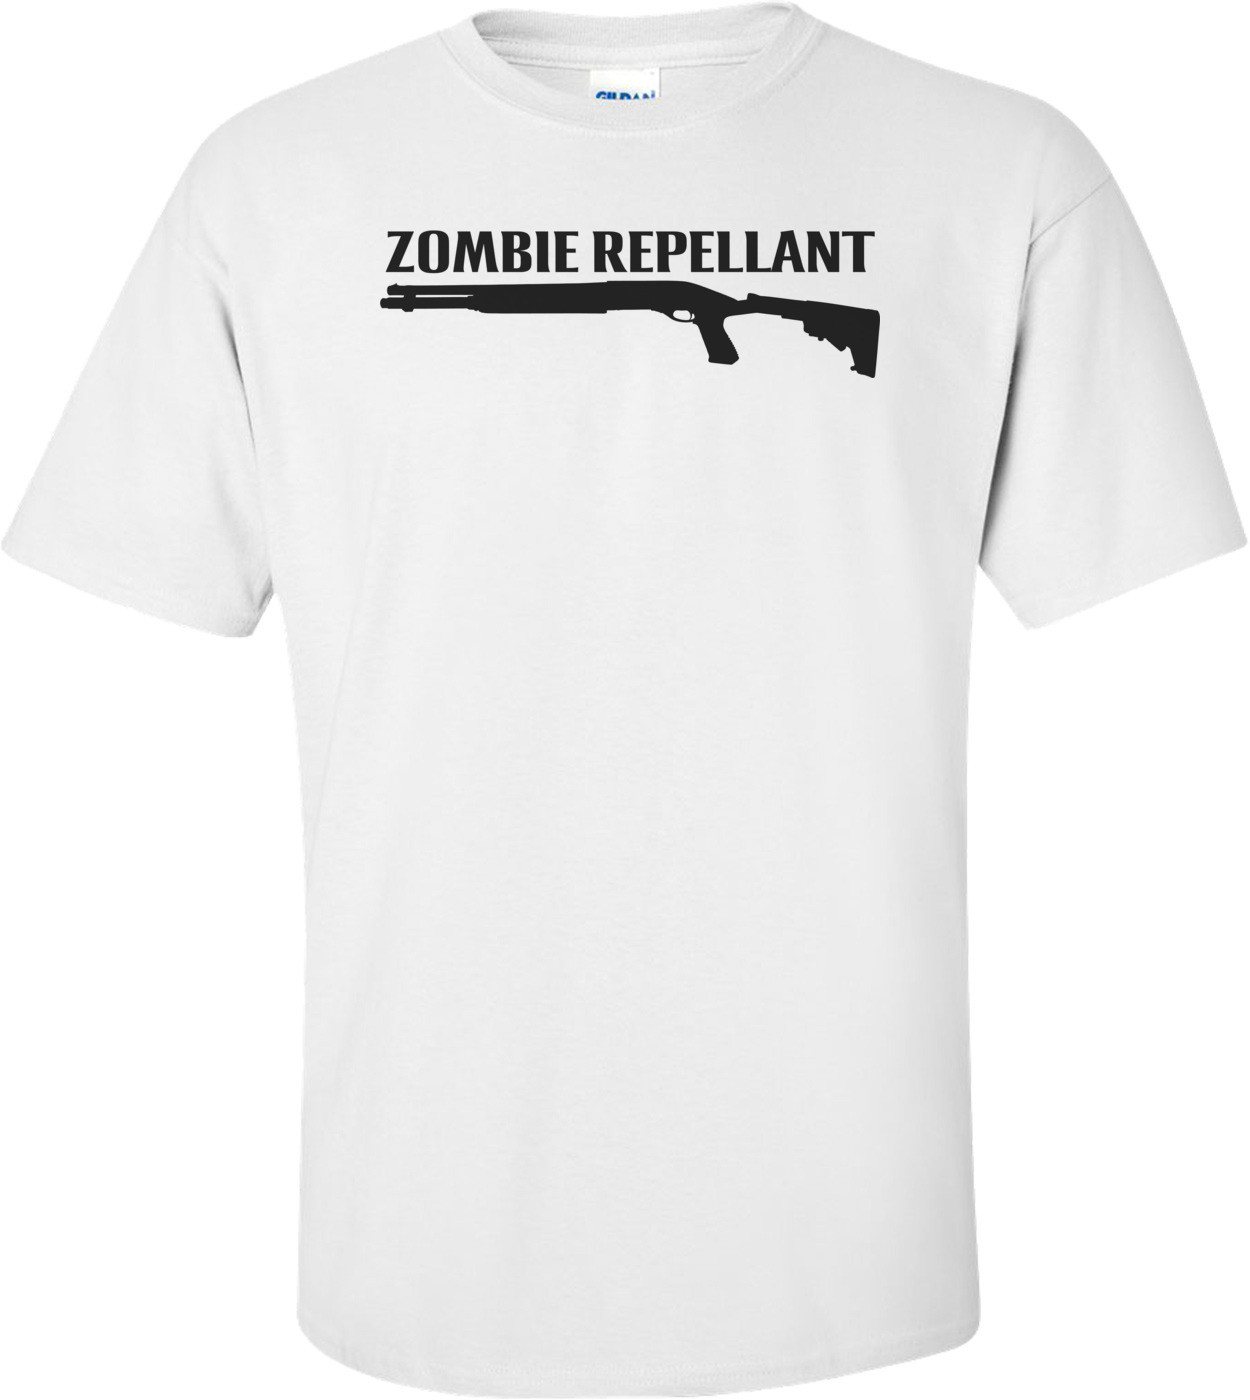 Zombie Repellant - Cool Zombie Shirt